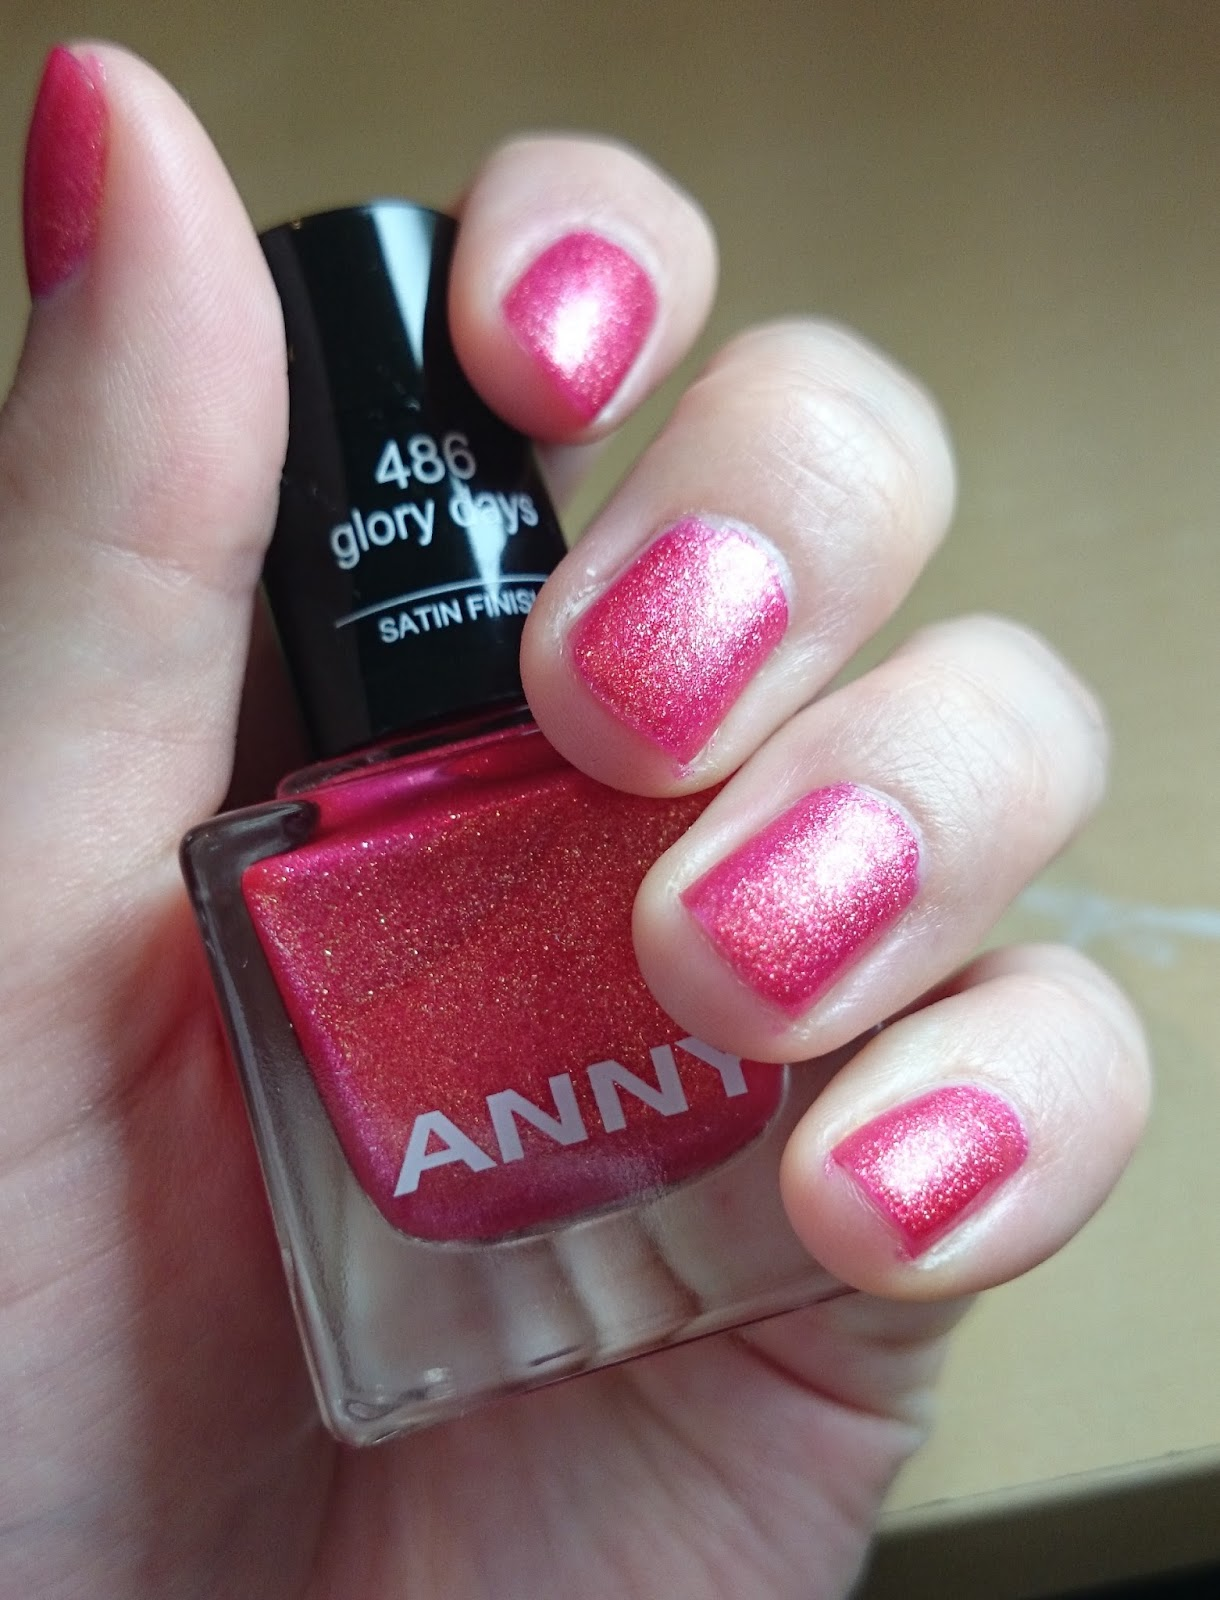 Anny Nagellack 486 Glory Days Satin Finish aufgetragen